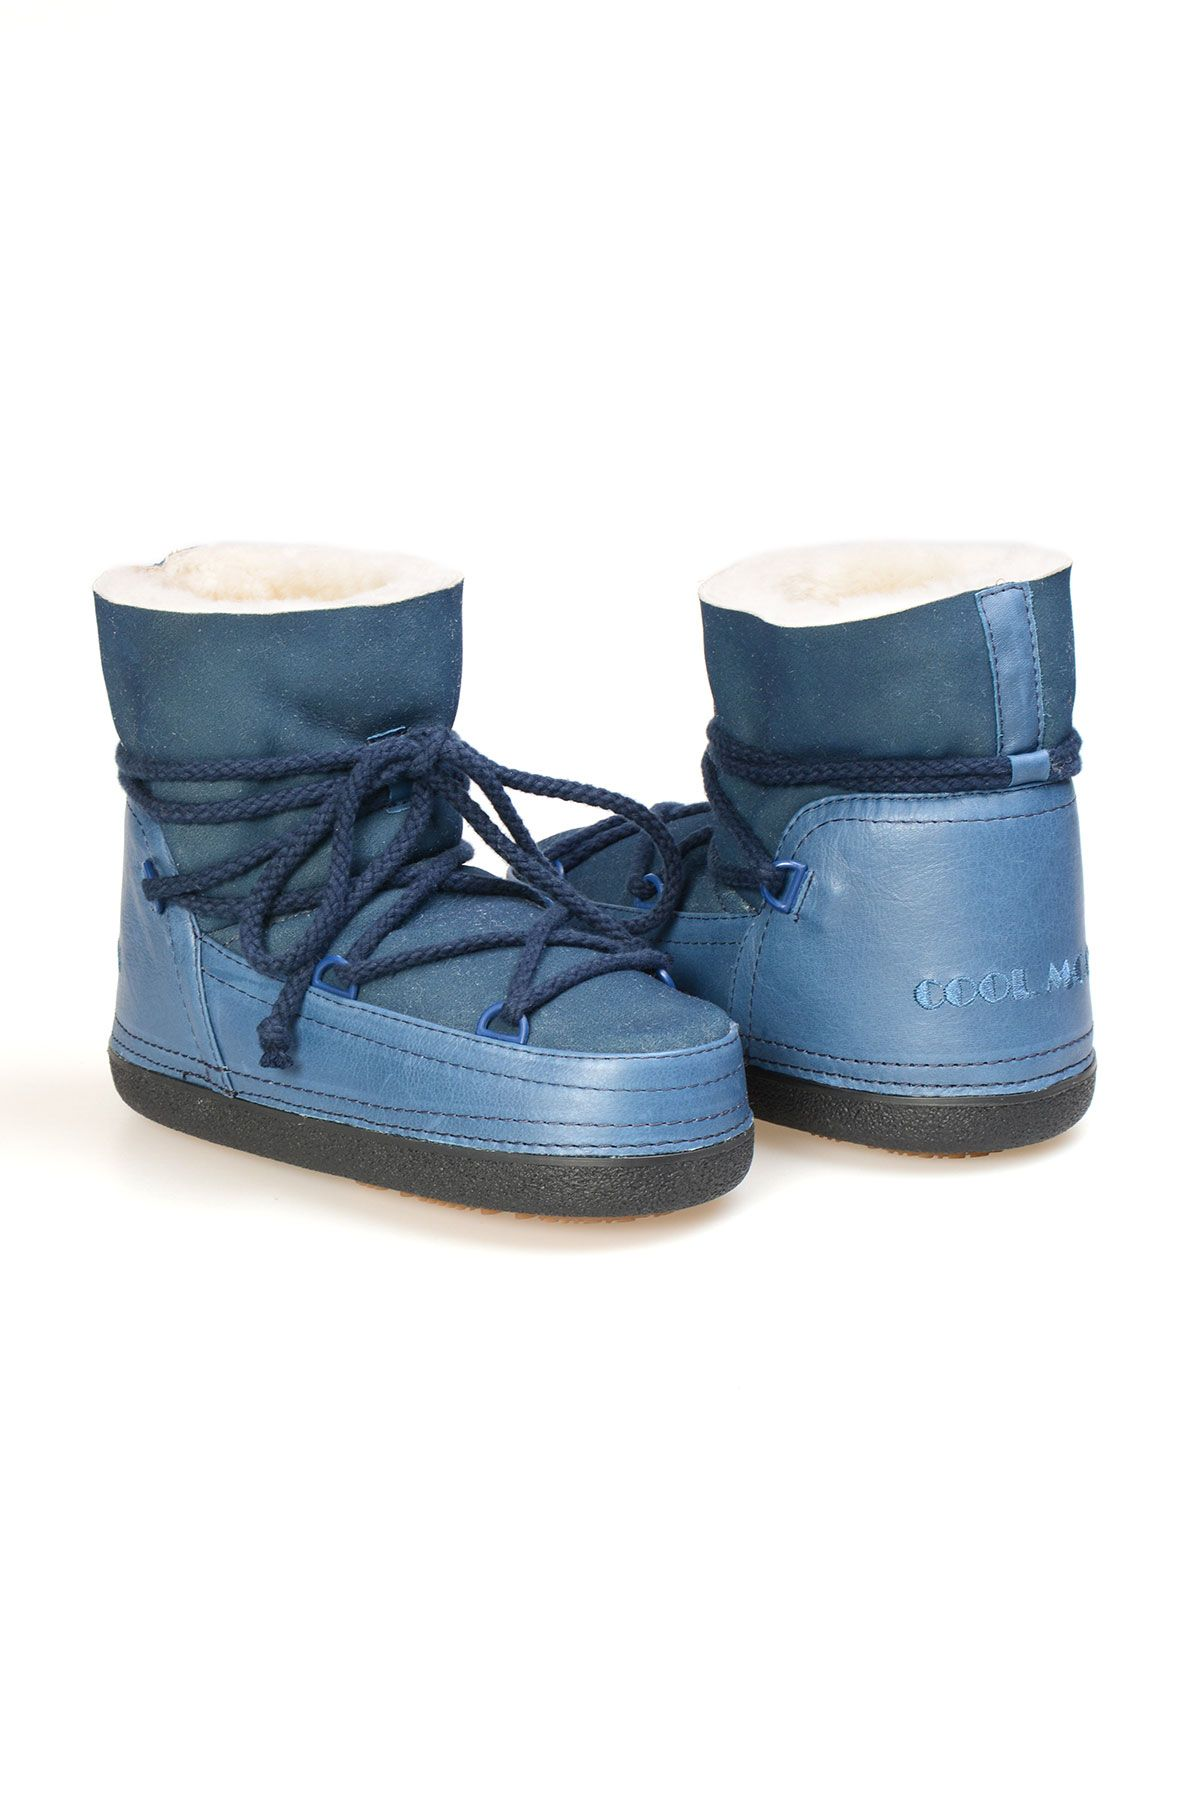 Cool Moon Genuine Leather Sheepskin Lined Women's Snow Boots 251105 Blue